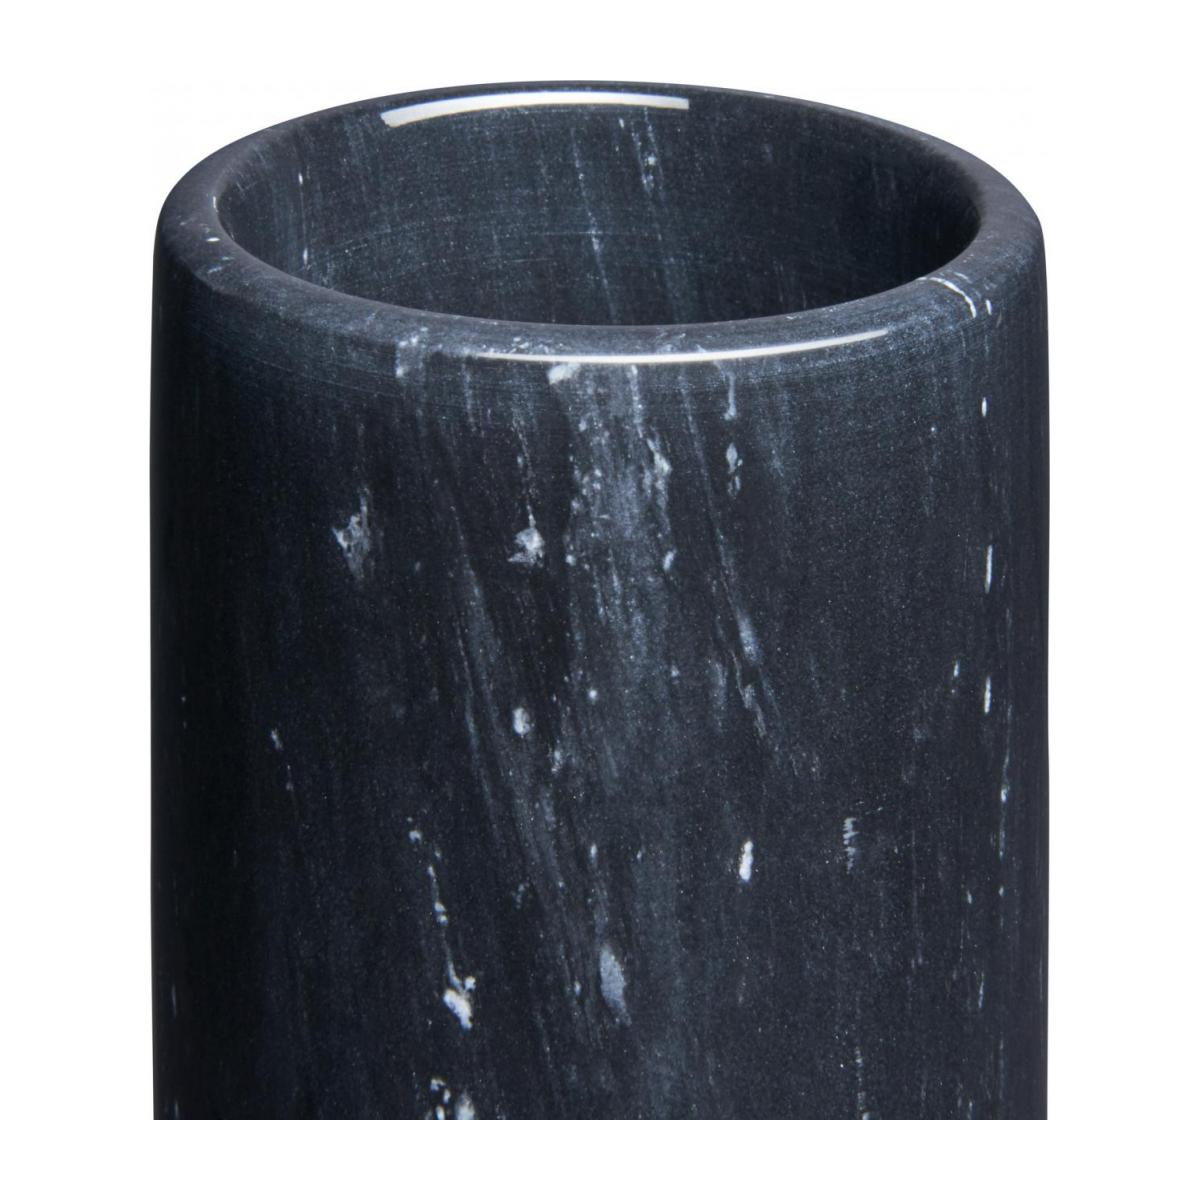 Bathroom tumbler made of marble, black n°2